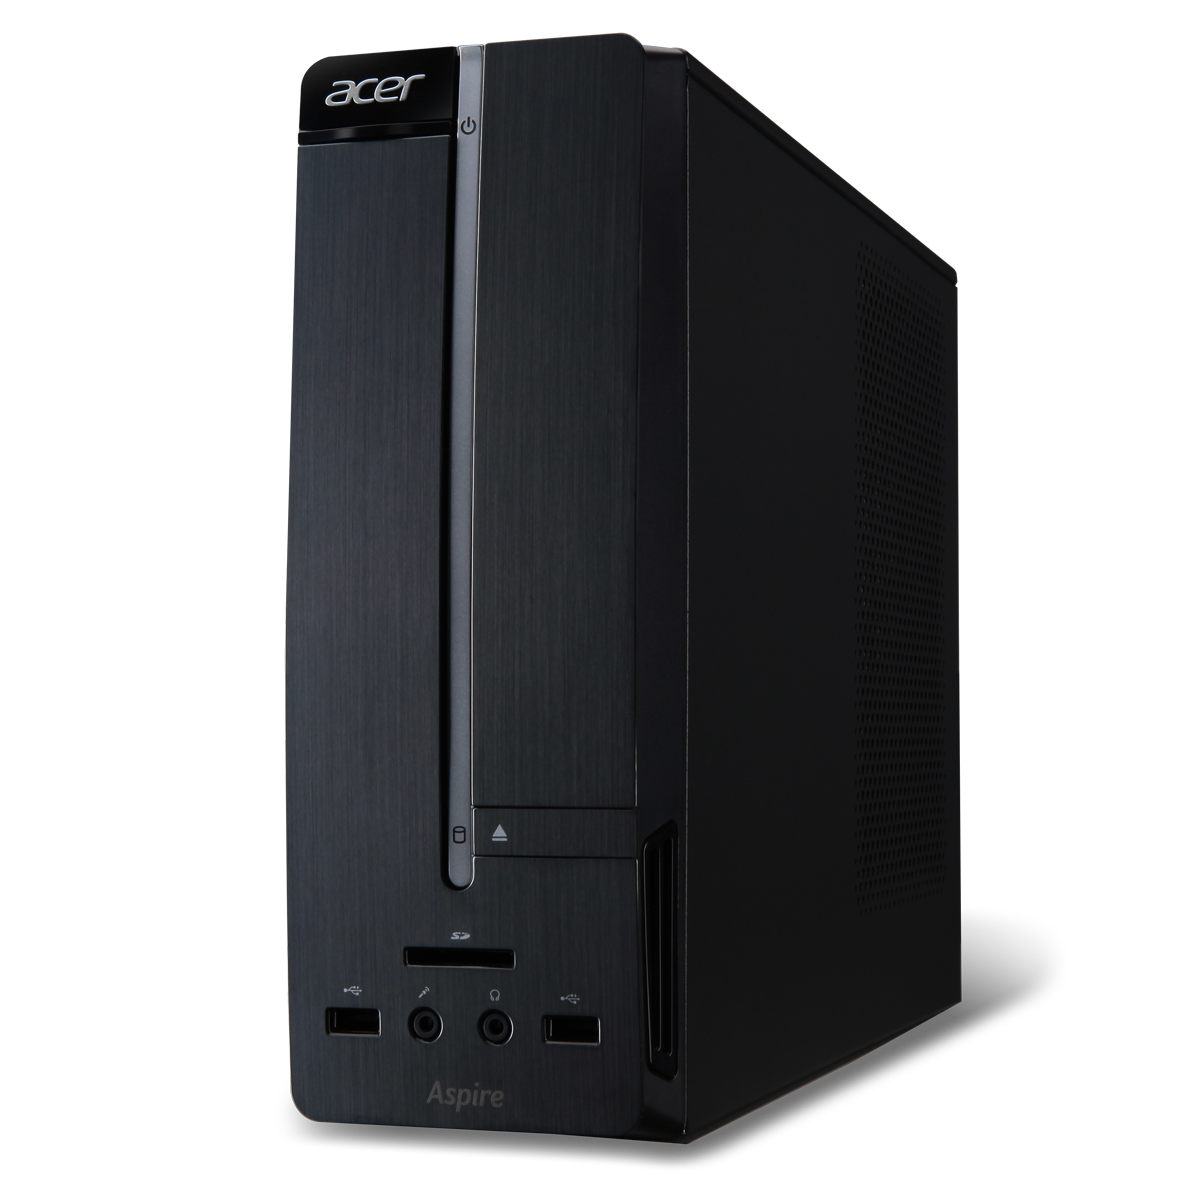 aspire xc desktops one third the size all the features acer. Black Bedroom Furniture Sets. Home Design Ideas